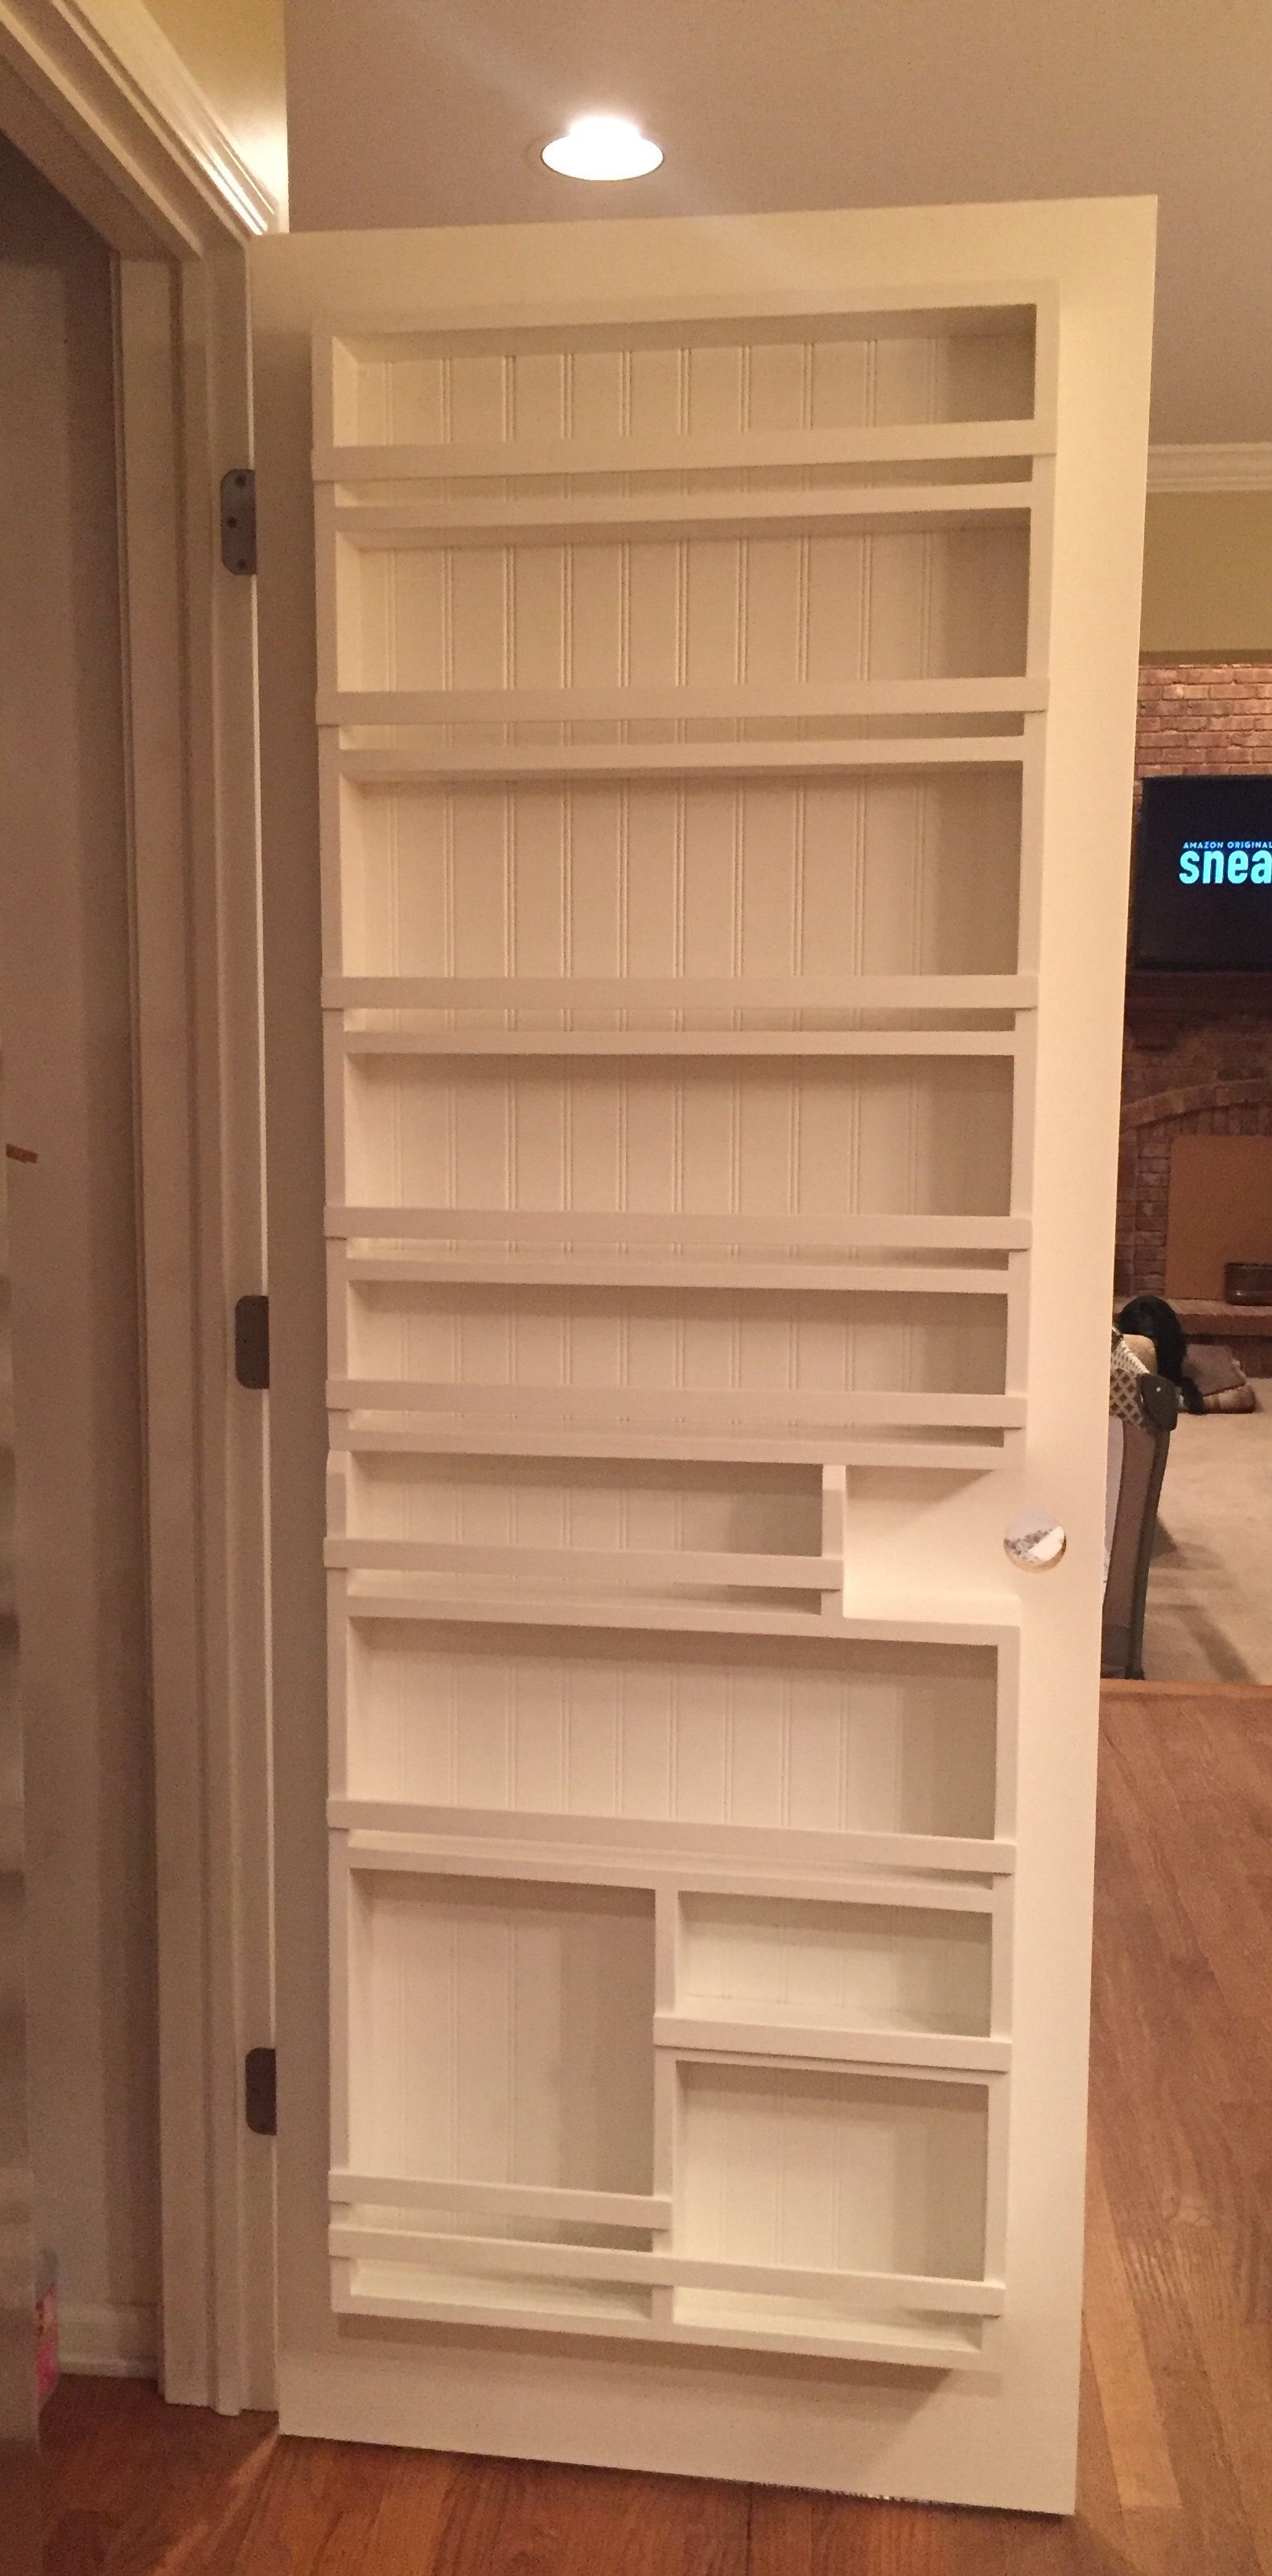 collier barn jenny doors diy pantry door blog